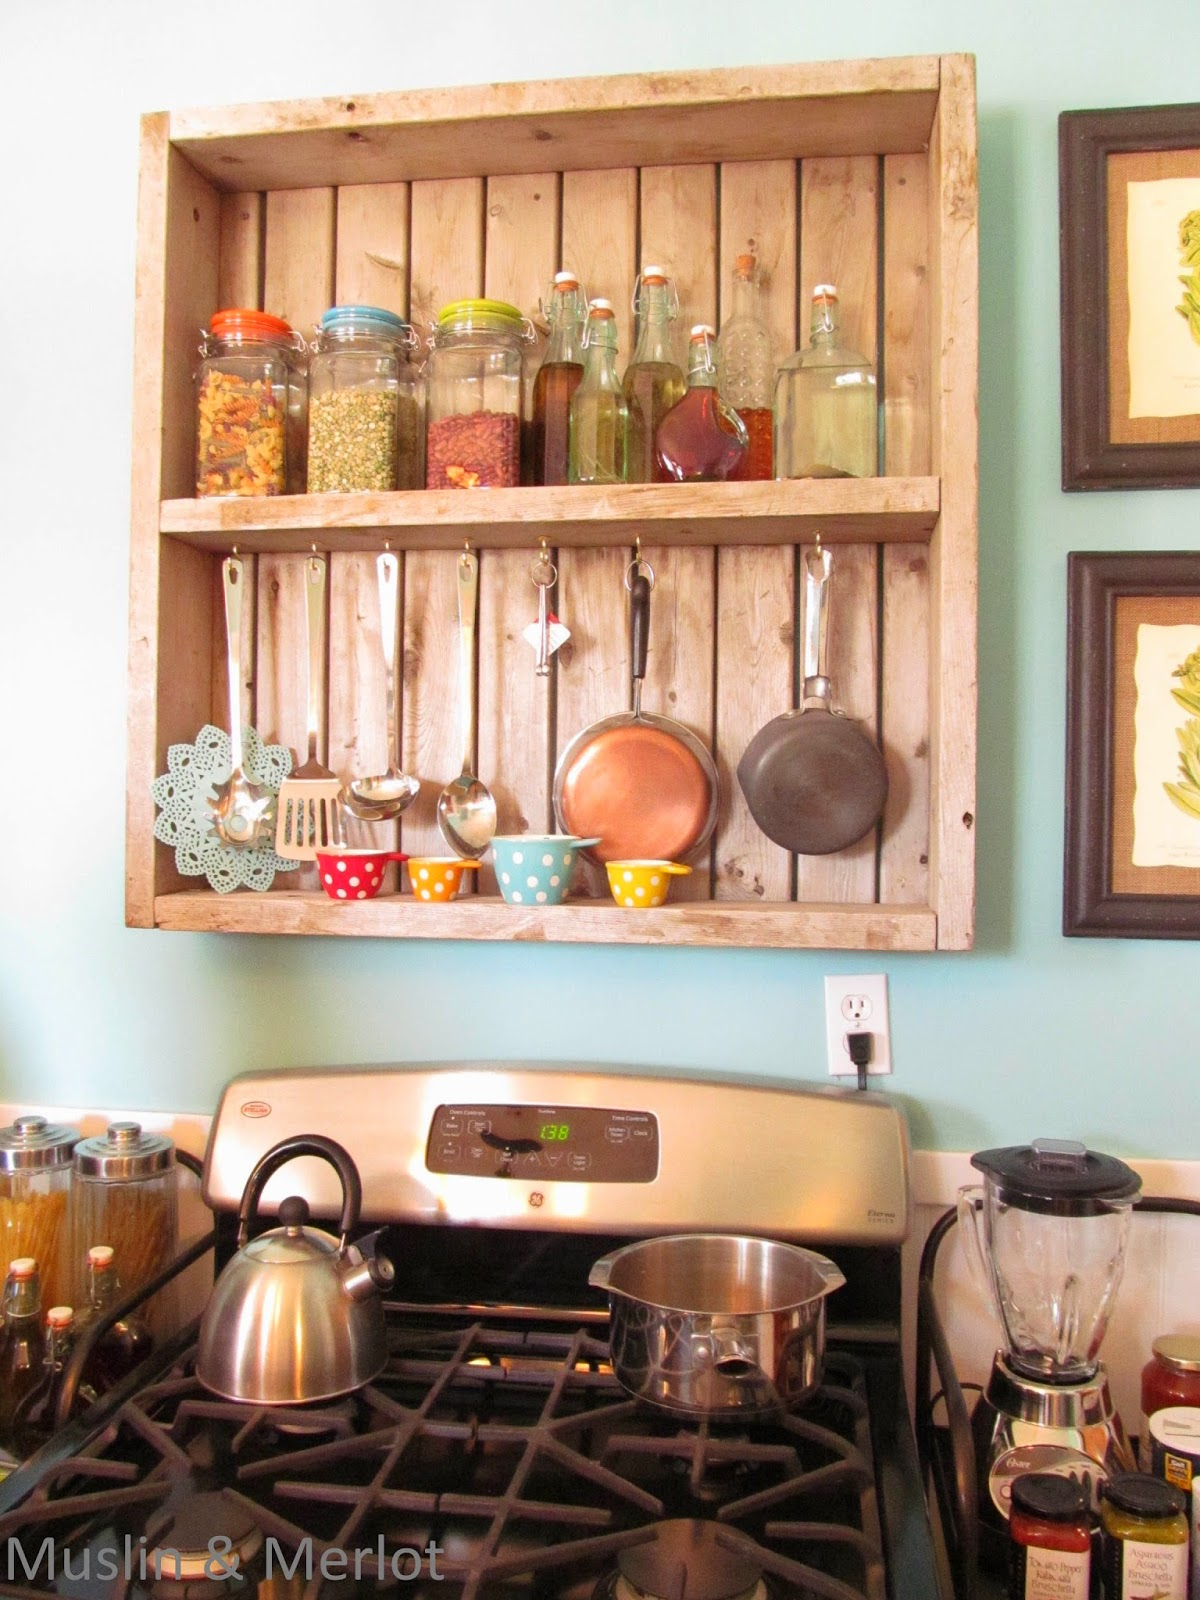 Use a Salvaged Wood box & little hooks for extra shelving and organizing.